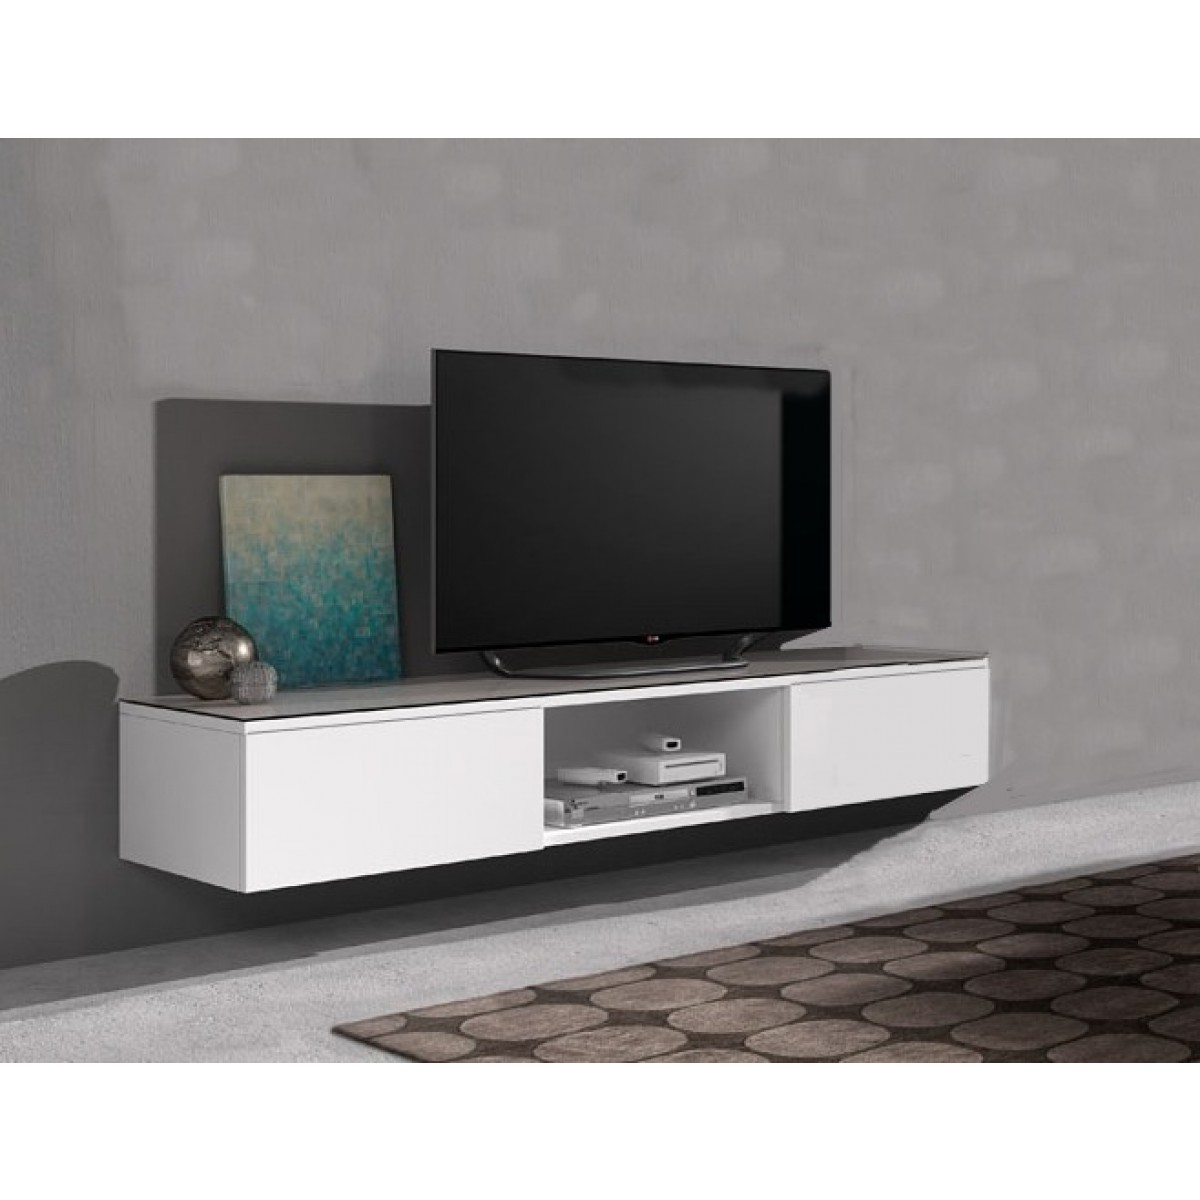 h ngend tv lowboard float 166 cm i live design preisg nstig online moebel kaufen. Black Bedroom Furniture Sets. Home Design Ideas